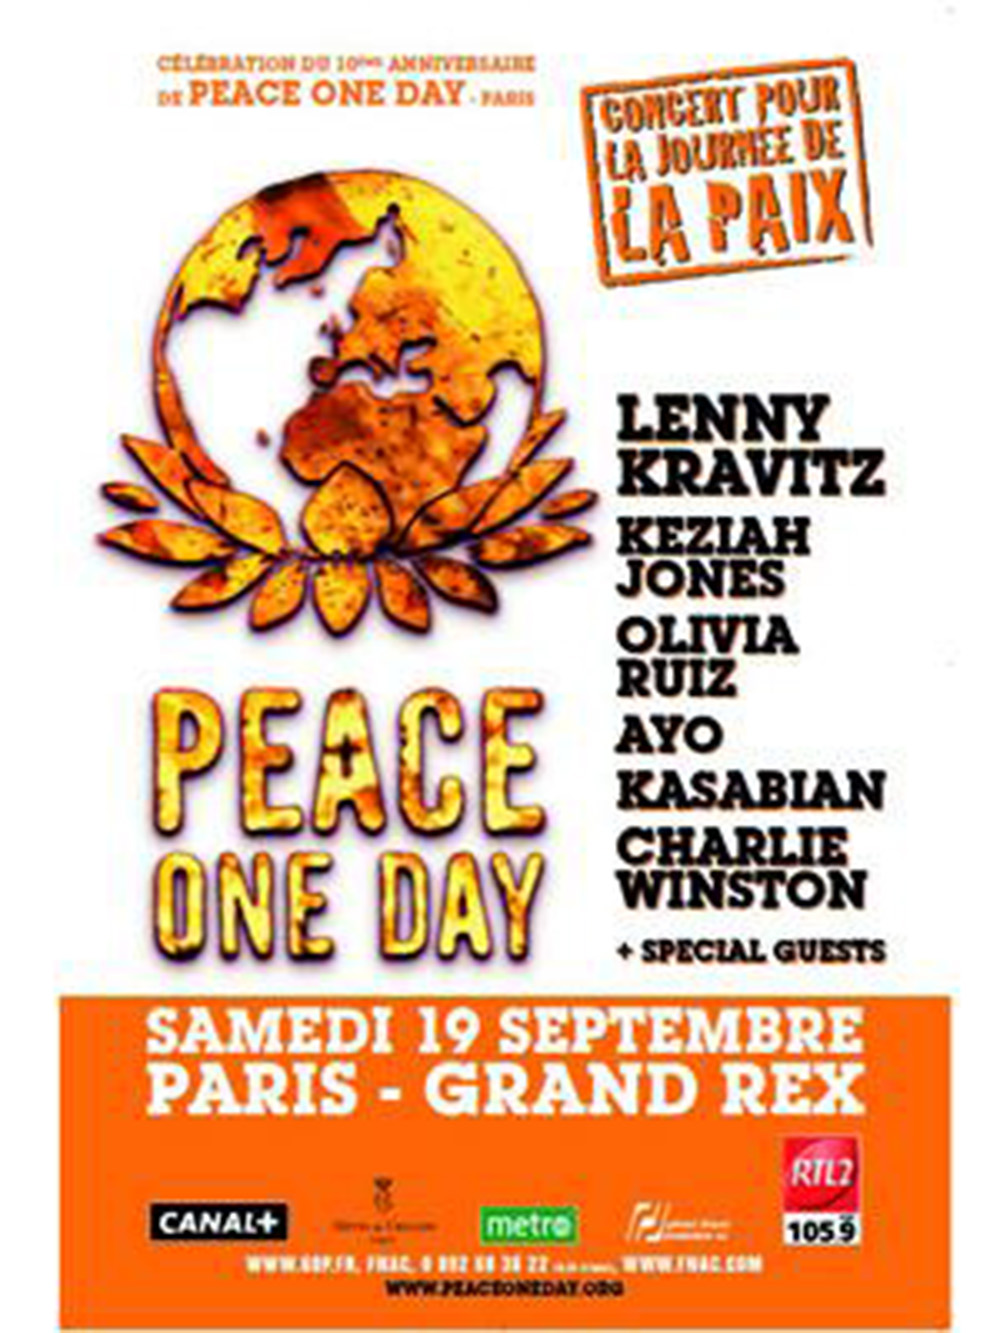 Chappell_Productions_Peace_One_Day6.jpg